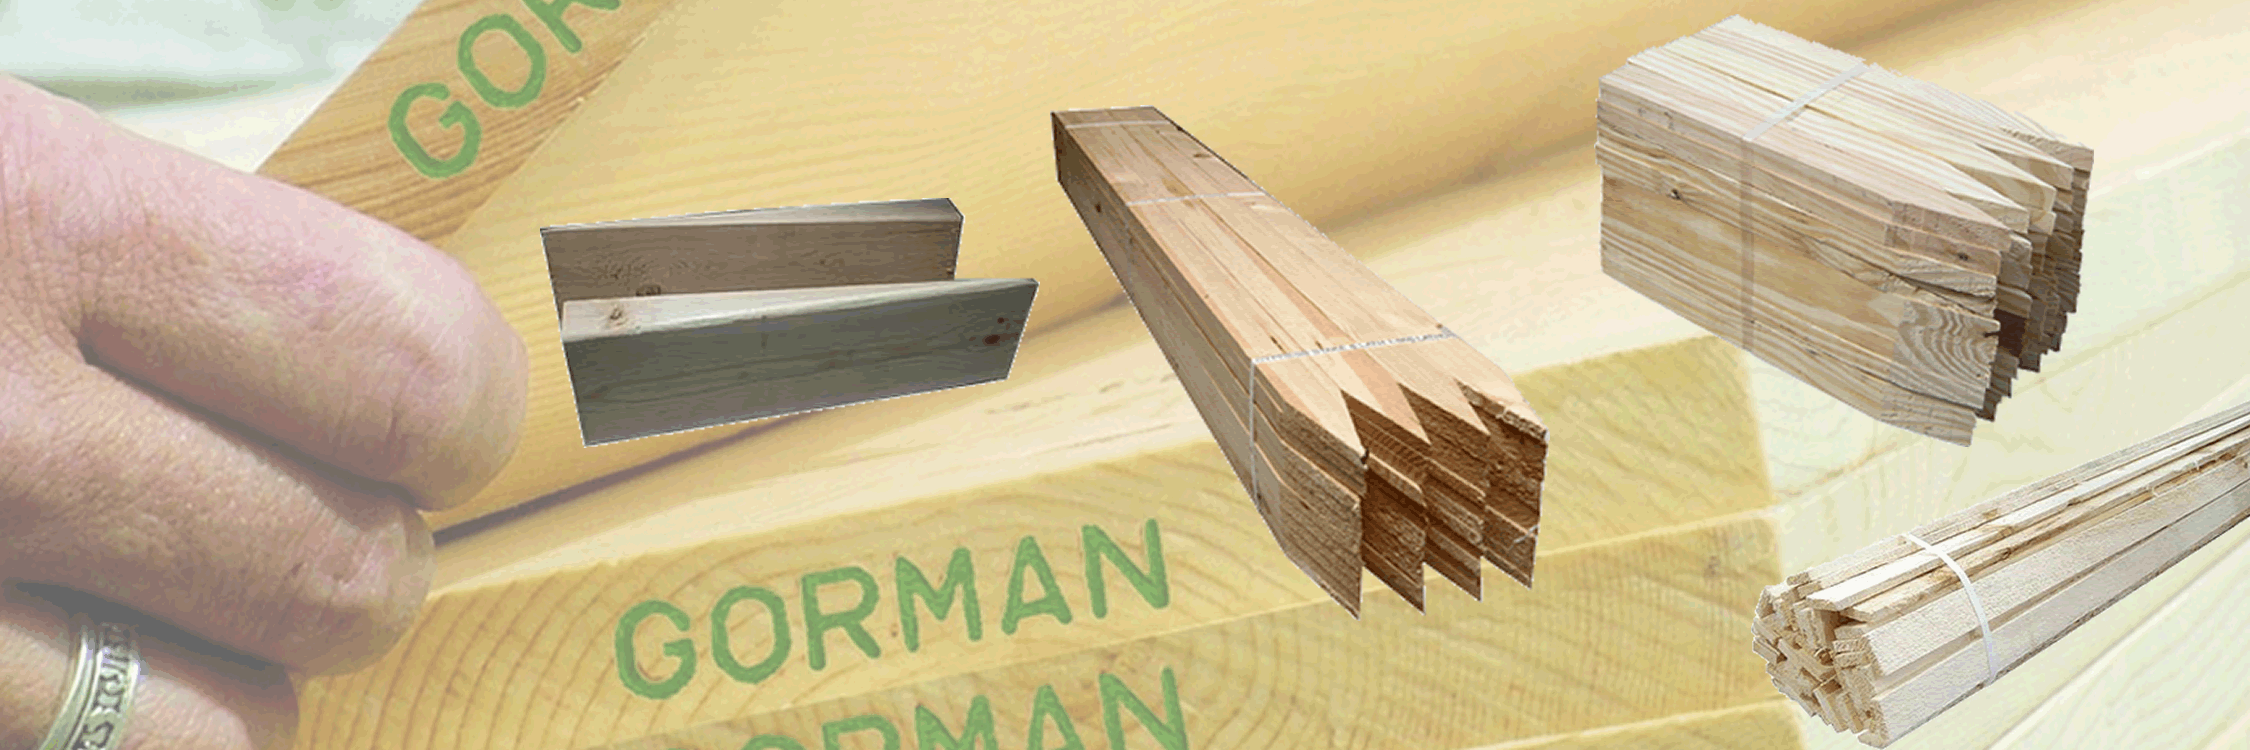 gorman 1x boards background with lath and stakes in forground